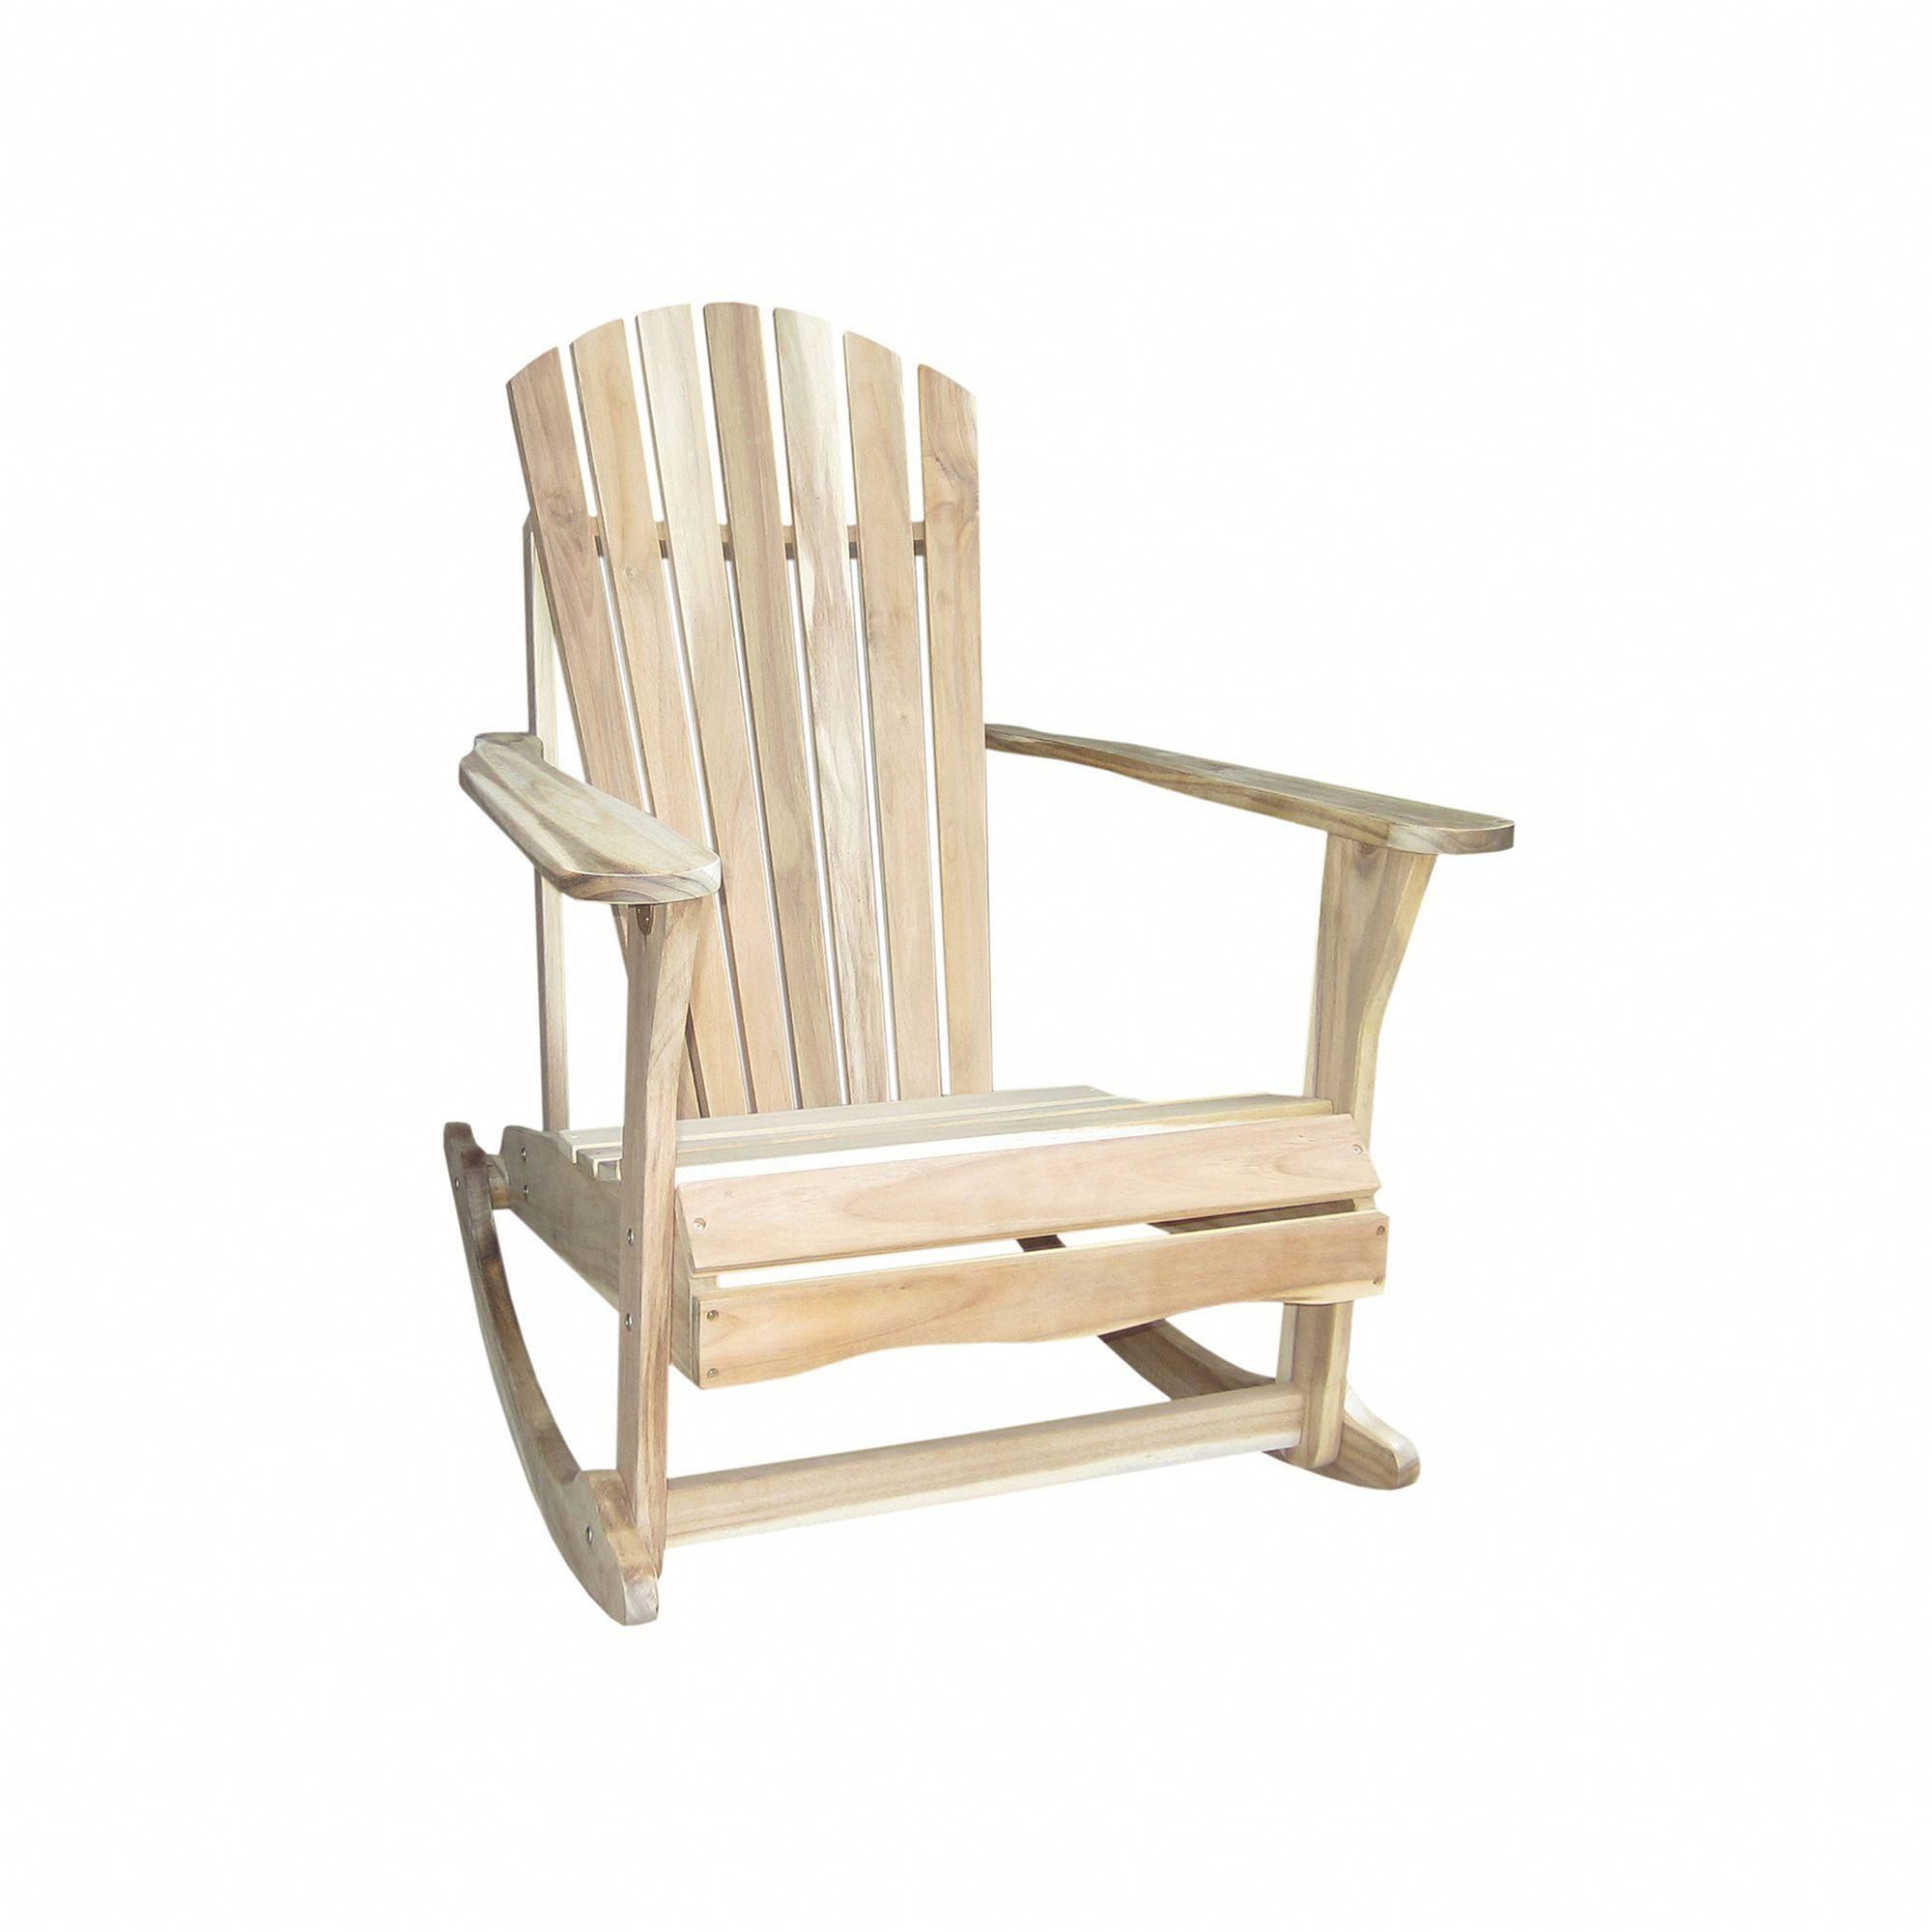 Oversized Living Room Chair OutdoorFurnitureChairs